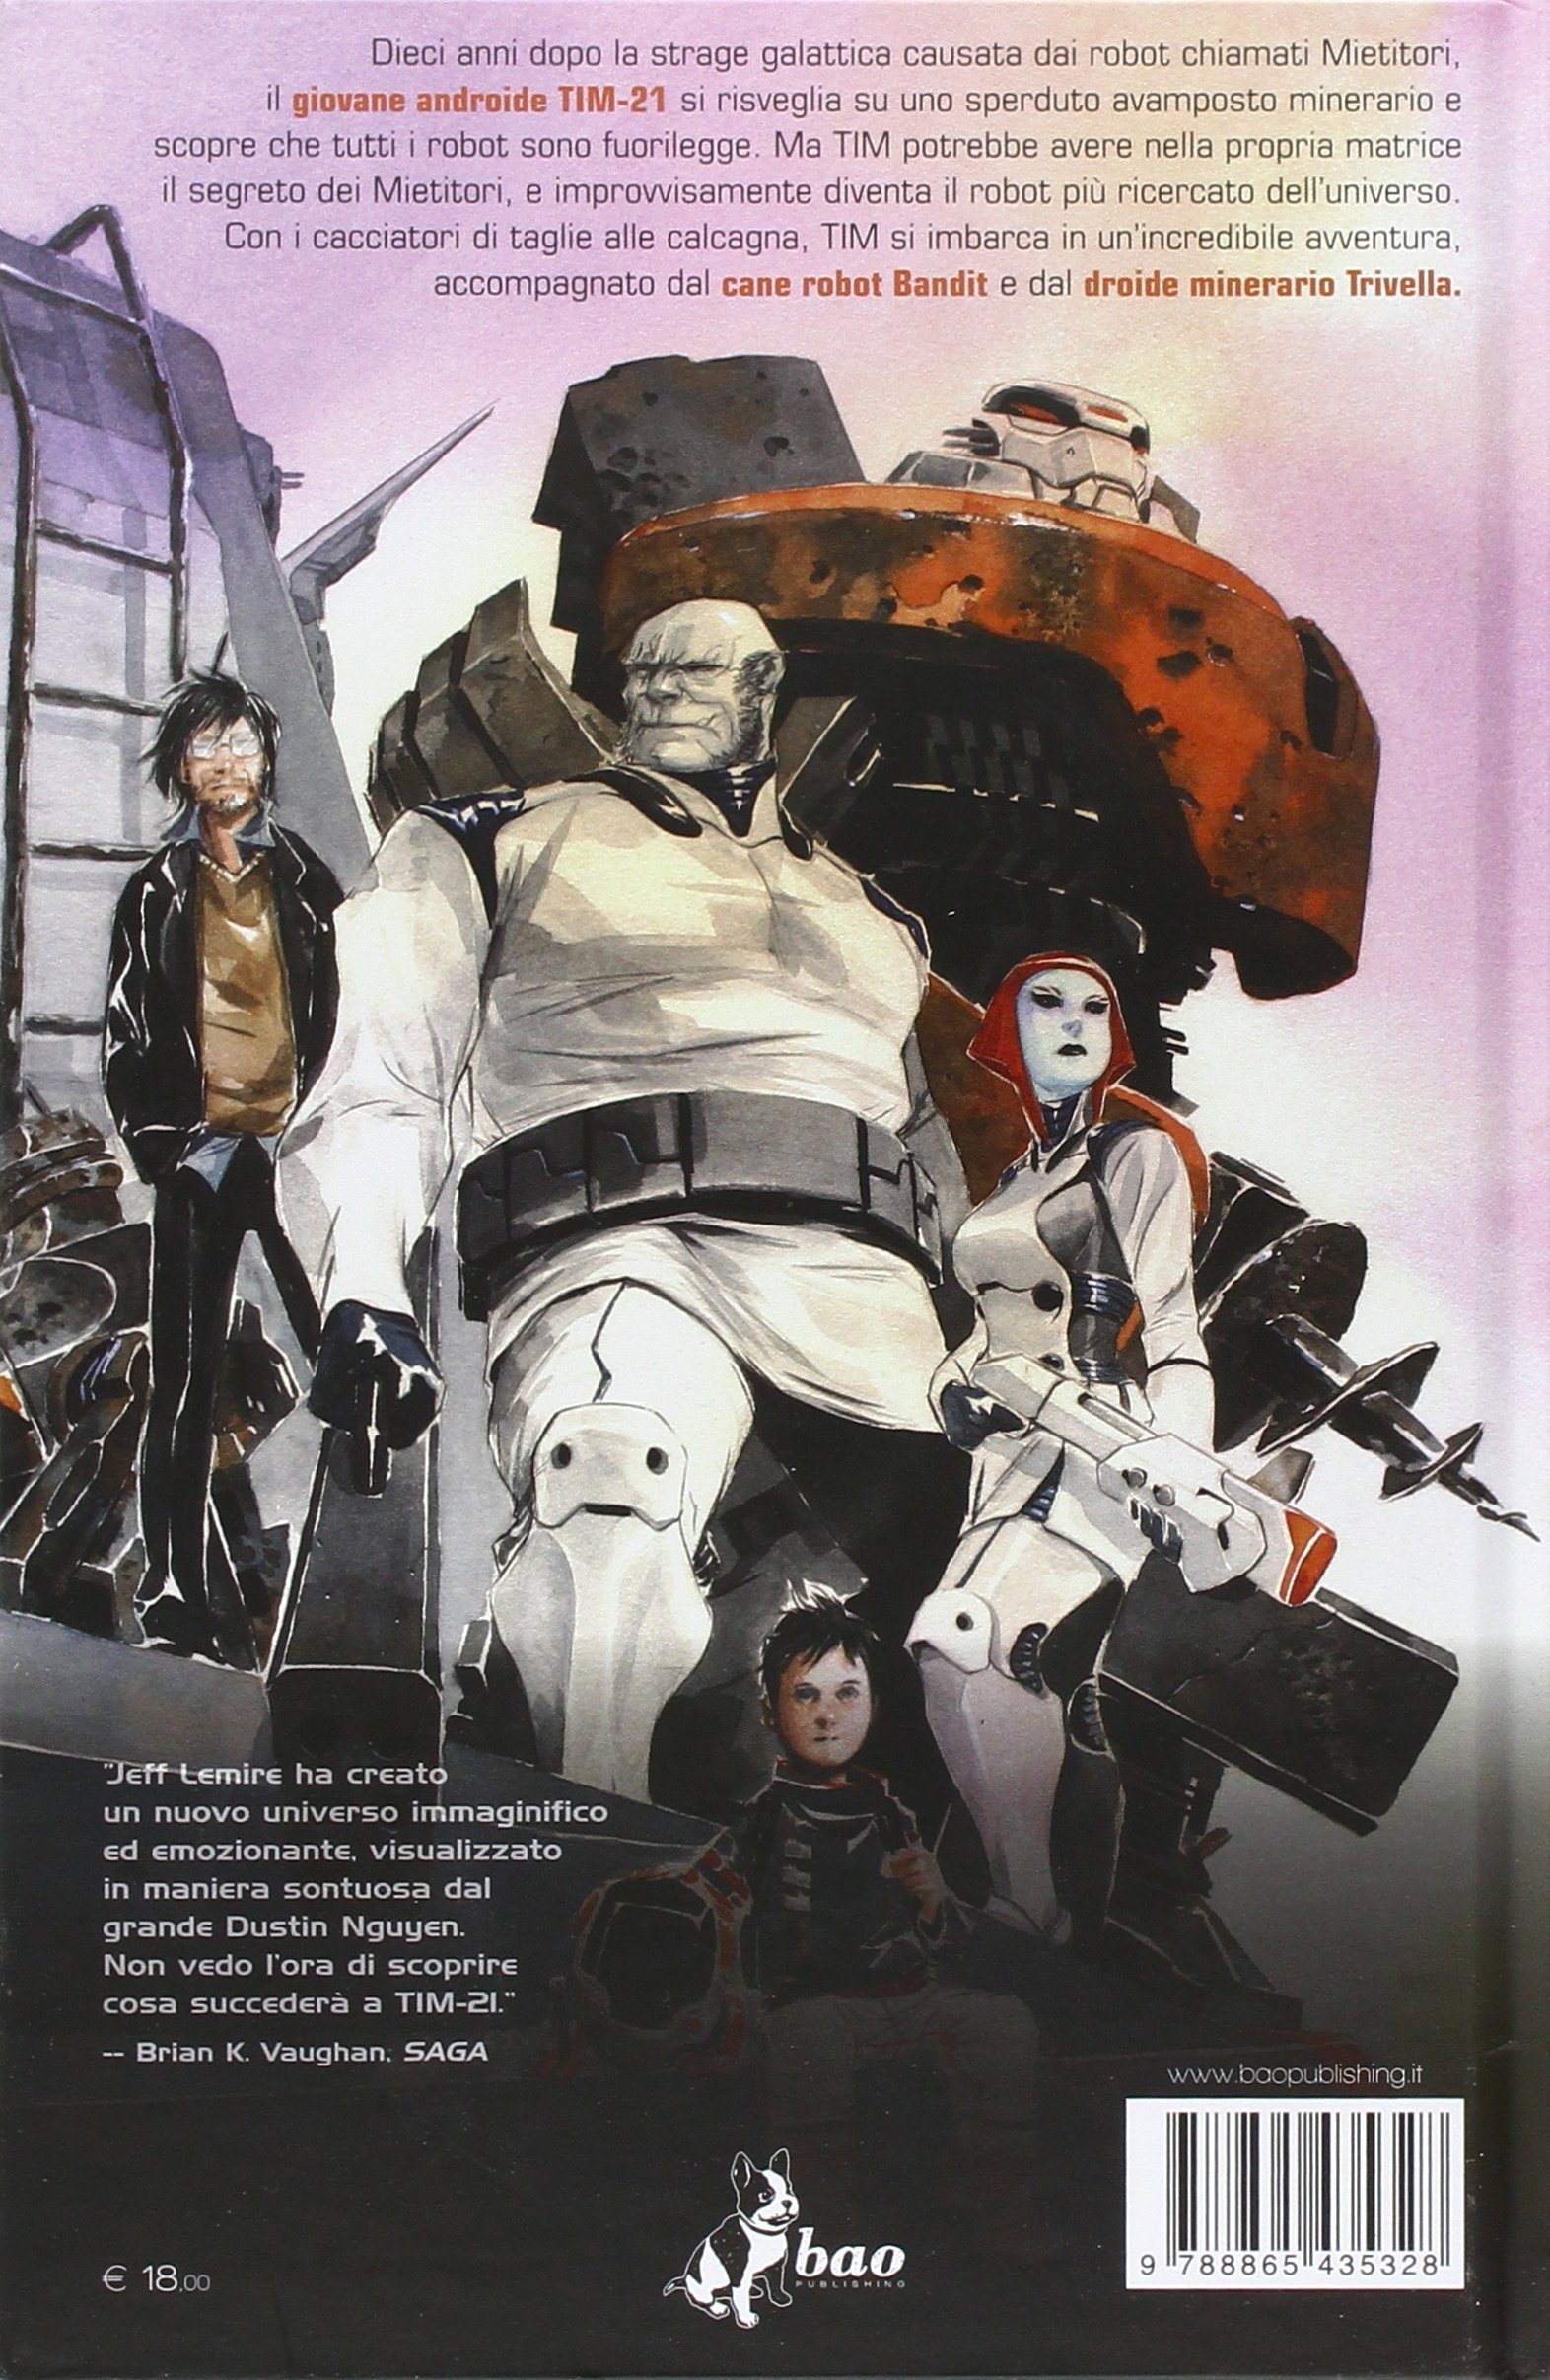 Descender: 1: Amazon.it: Lemire, Jeff, Nguyen, Dustin, Foschini, M., Favia,  L.: Libri